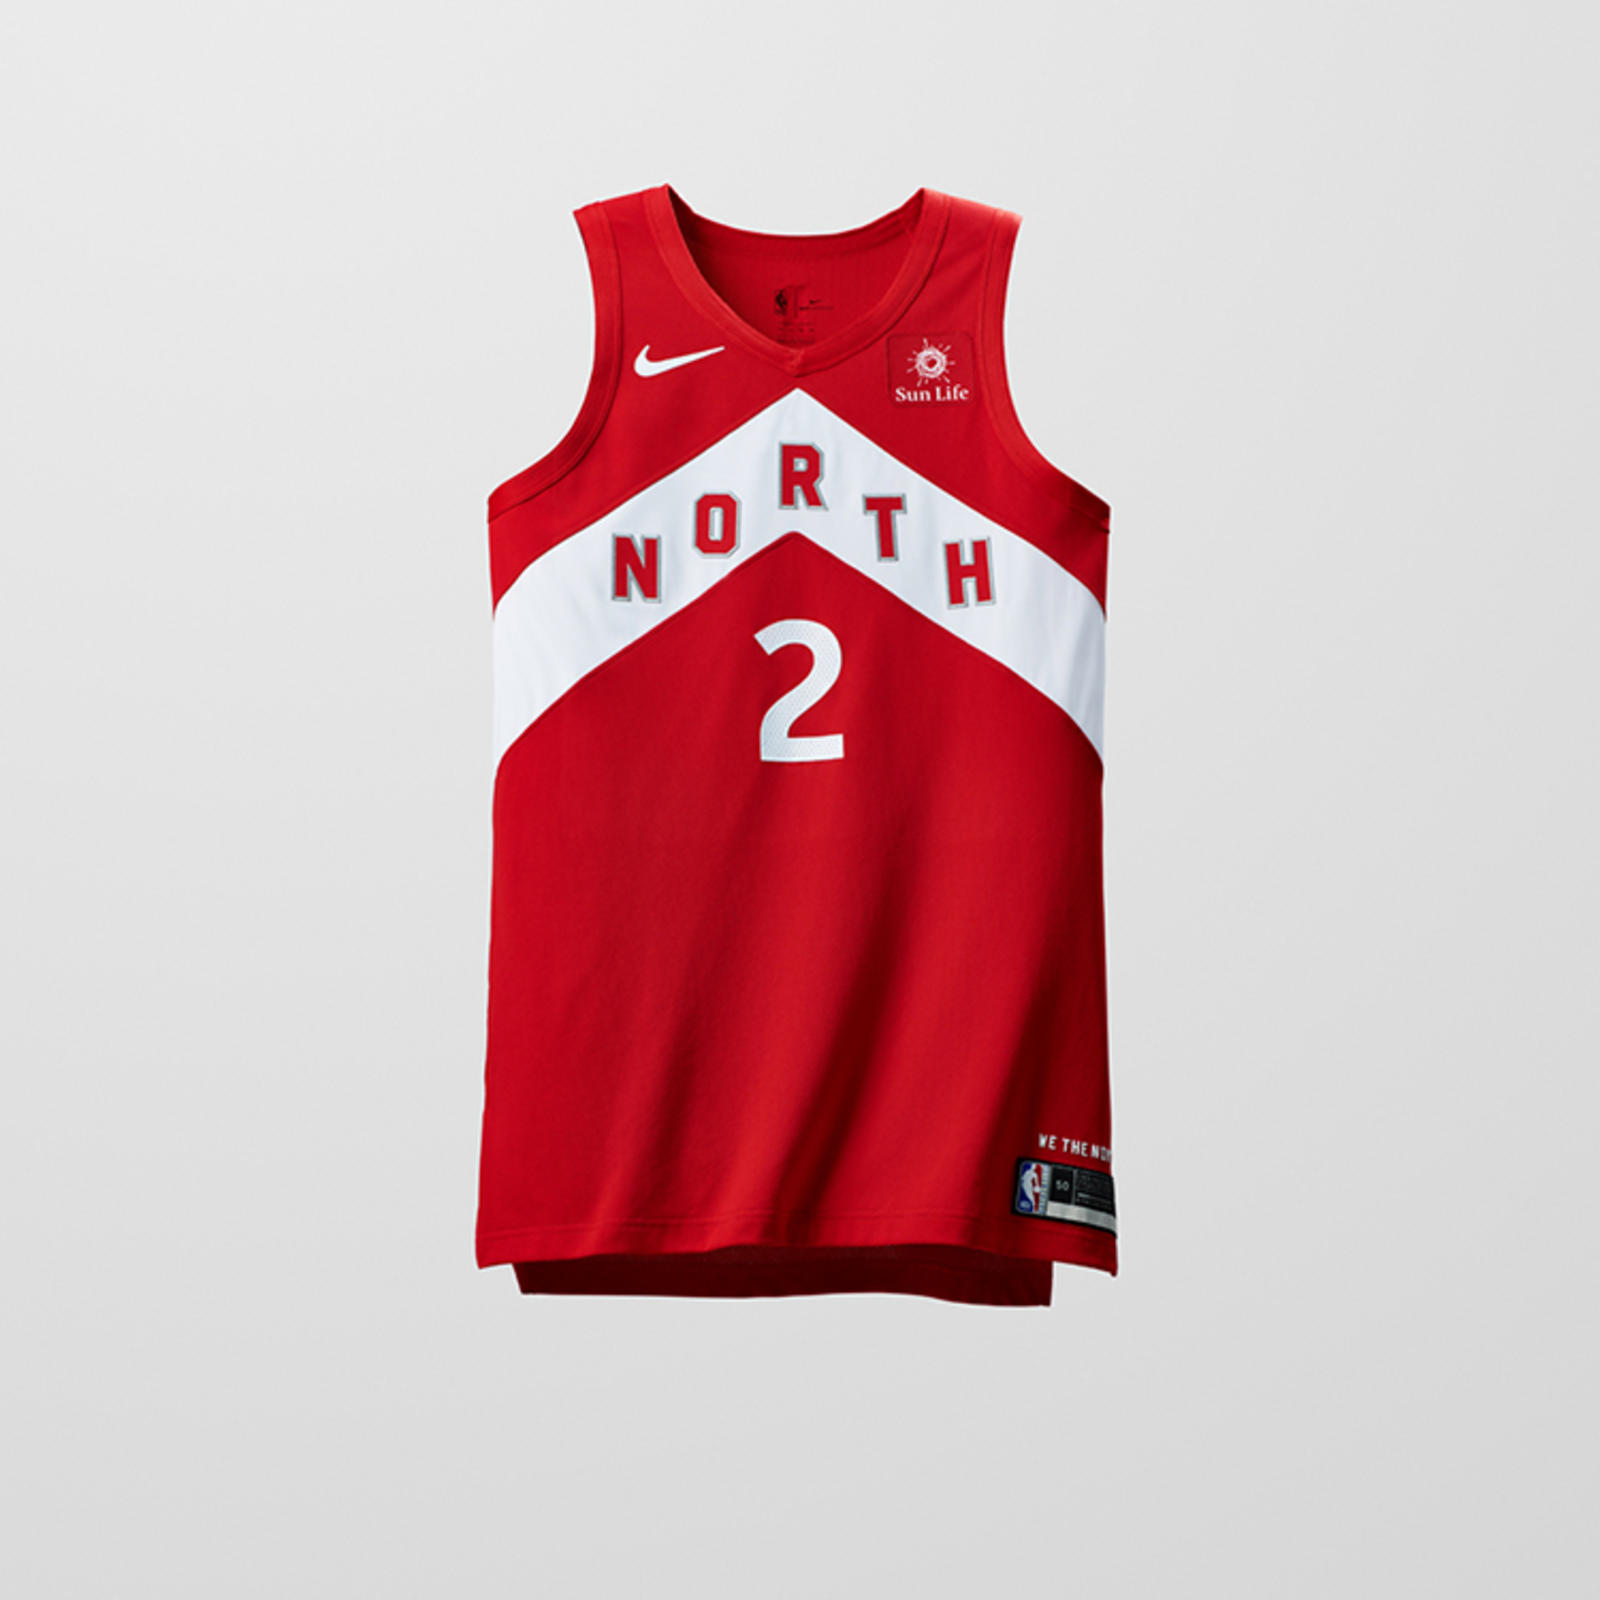 4be7ce6f76b Introducing the Nike x NBA EARNED Edition Uniforms 4